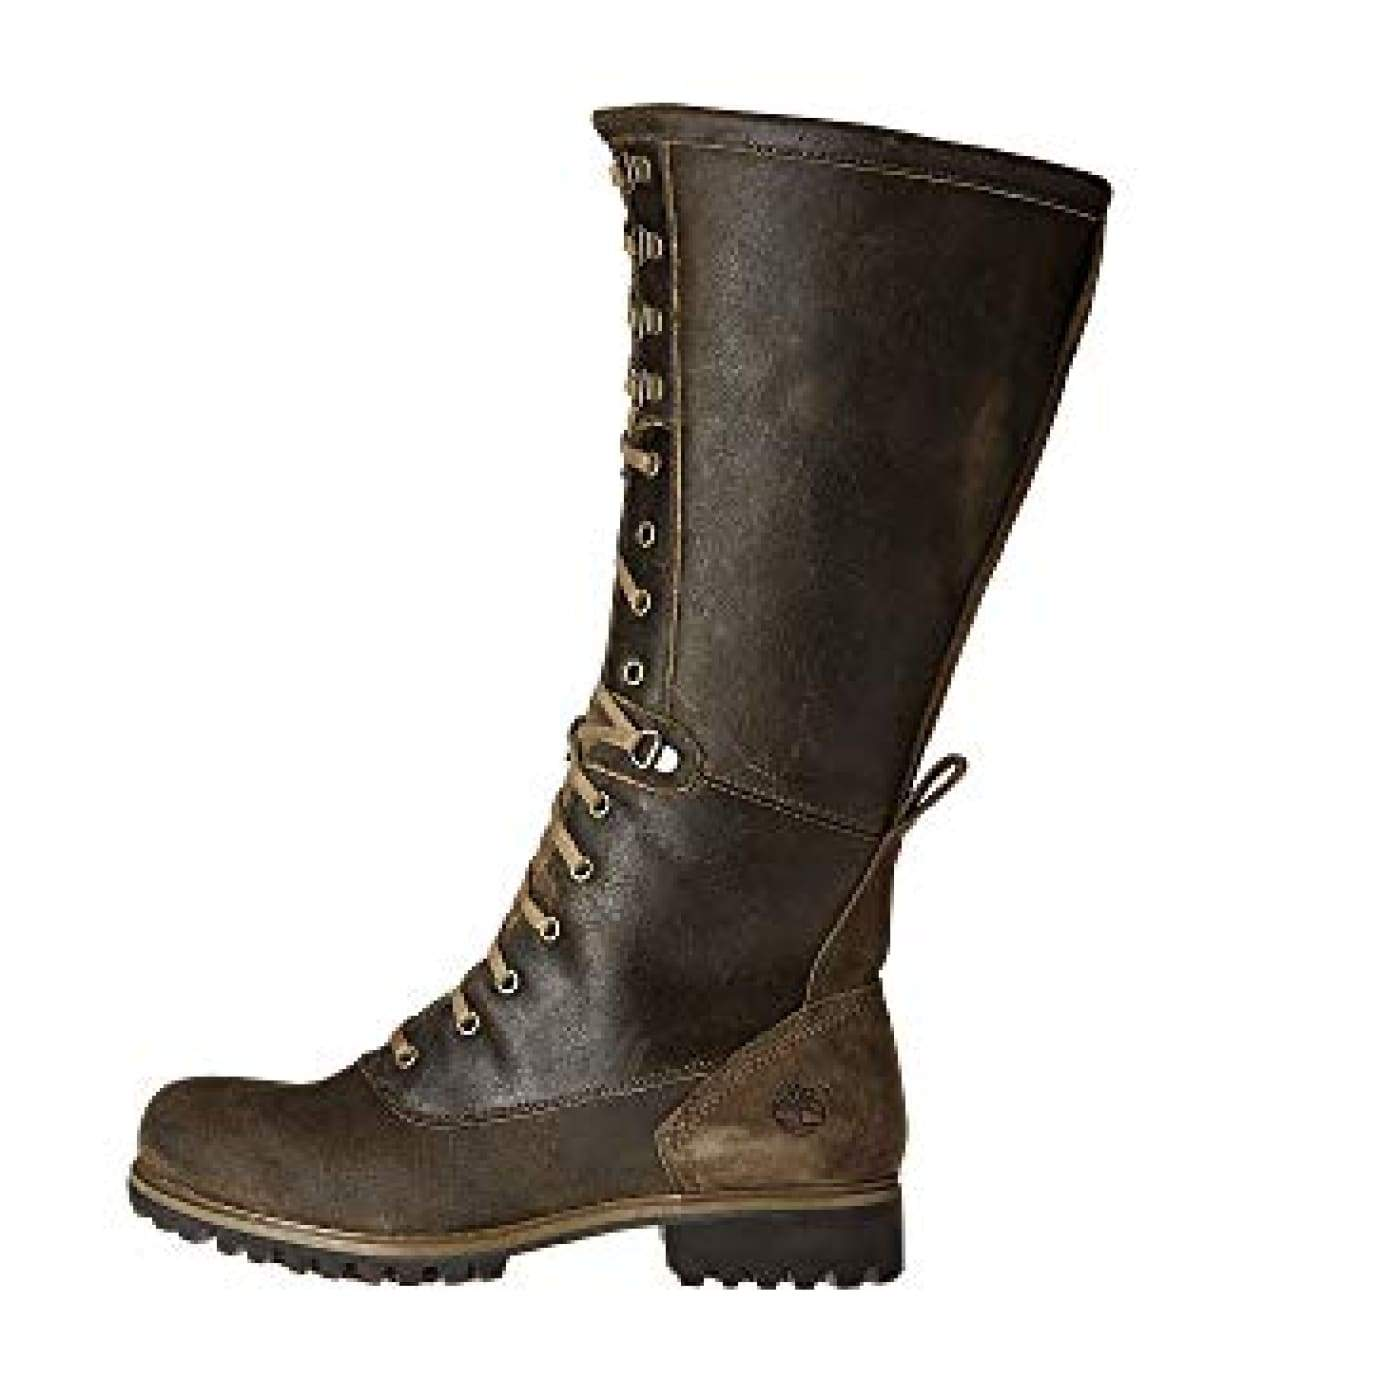 b1389d20377 Funky Town Clothing - Timberland Wheelwright Tall Lace Waterproof Boot